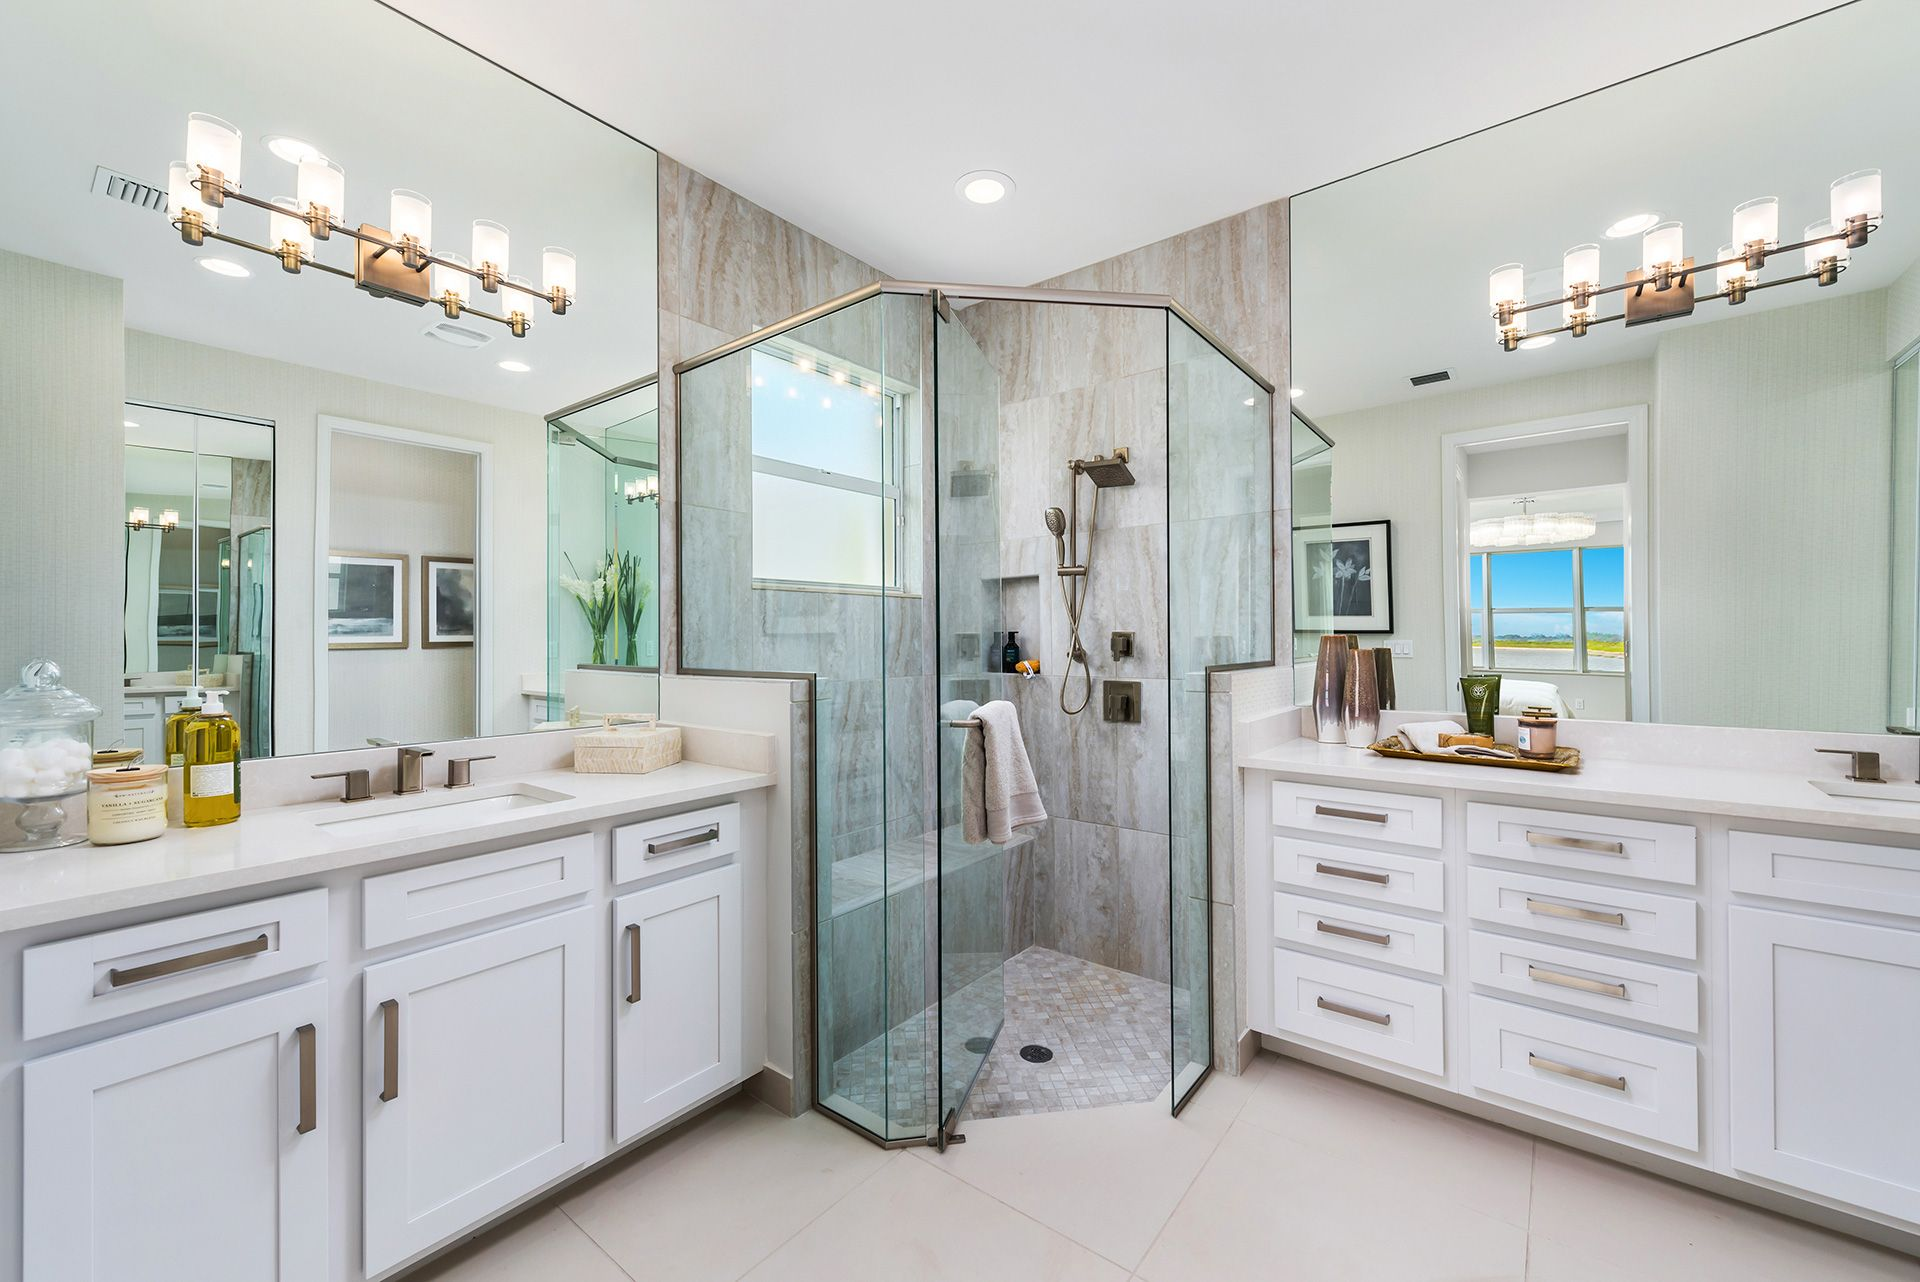 Bathroom featured in the Lucia By GL Homes in Martin-St. Lucie-Okeechobee Counties, FL